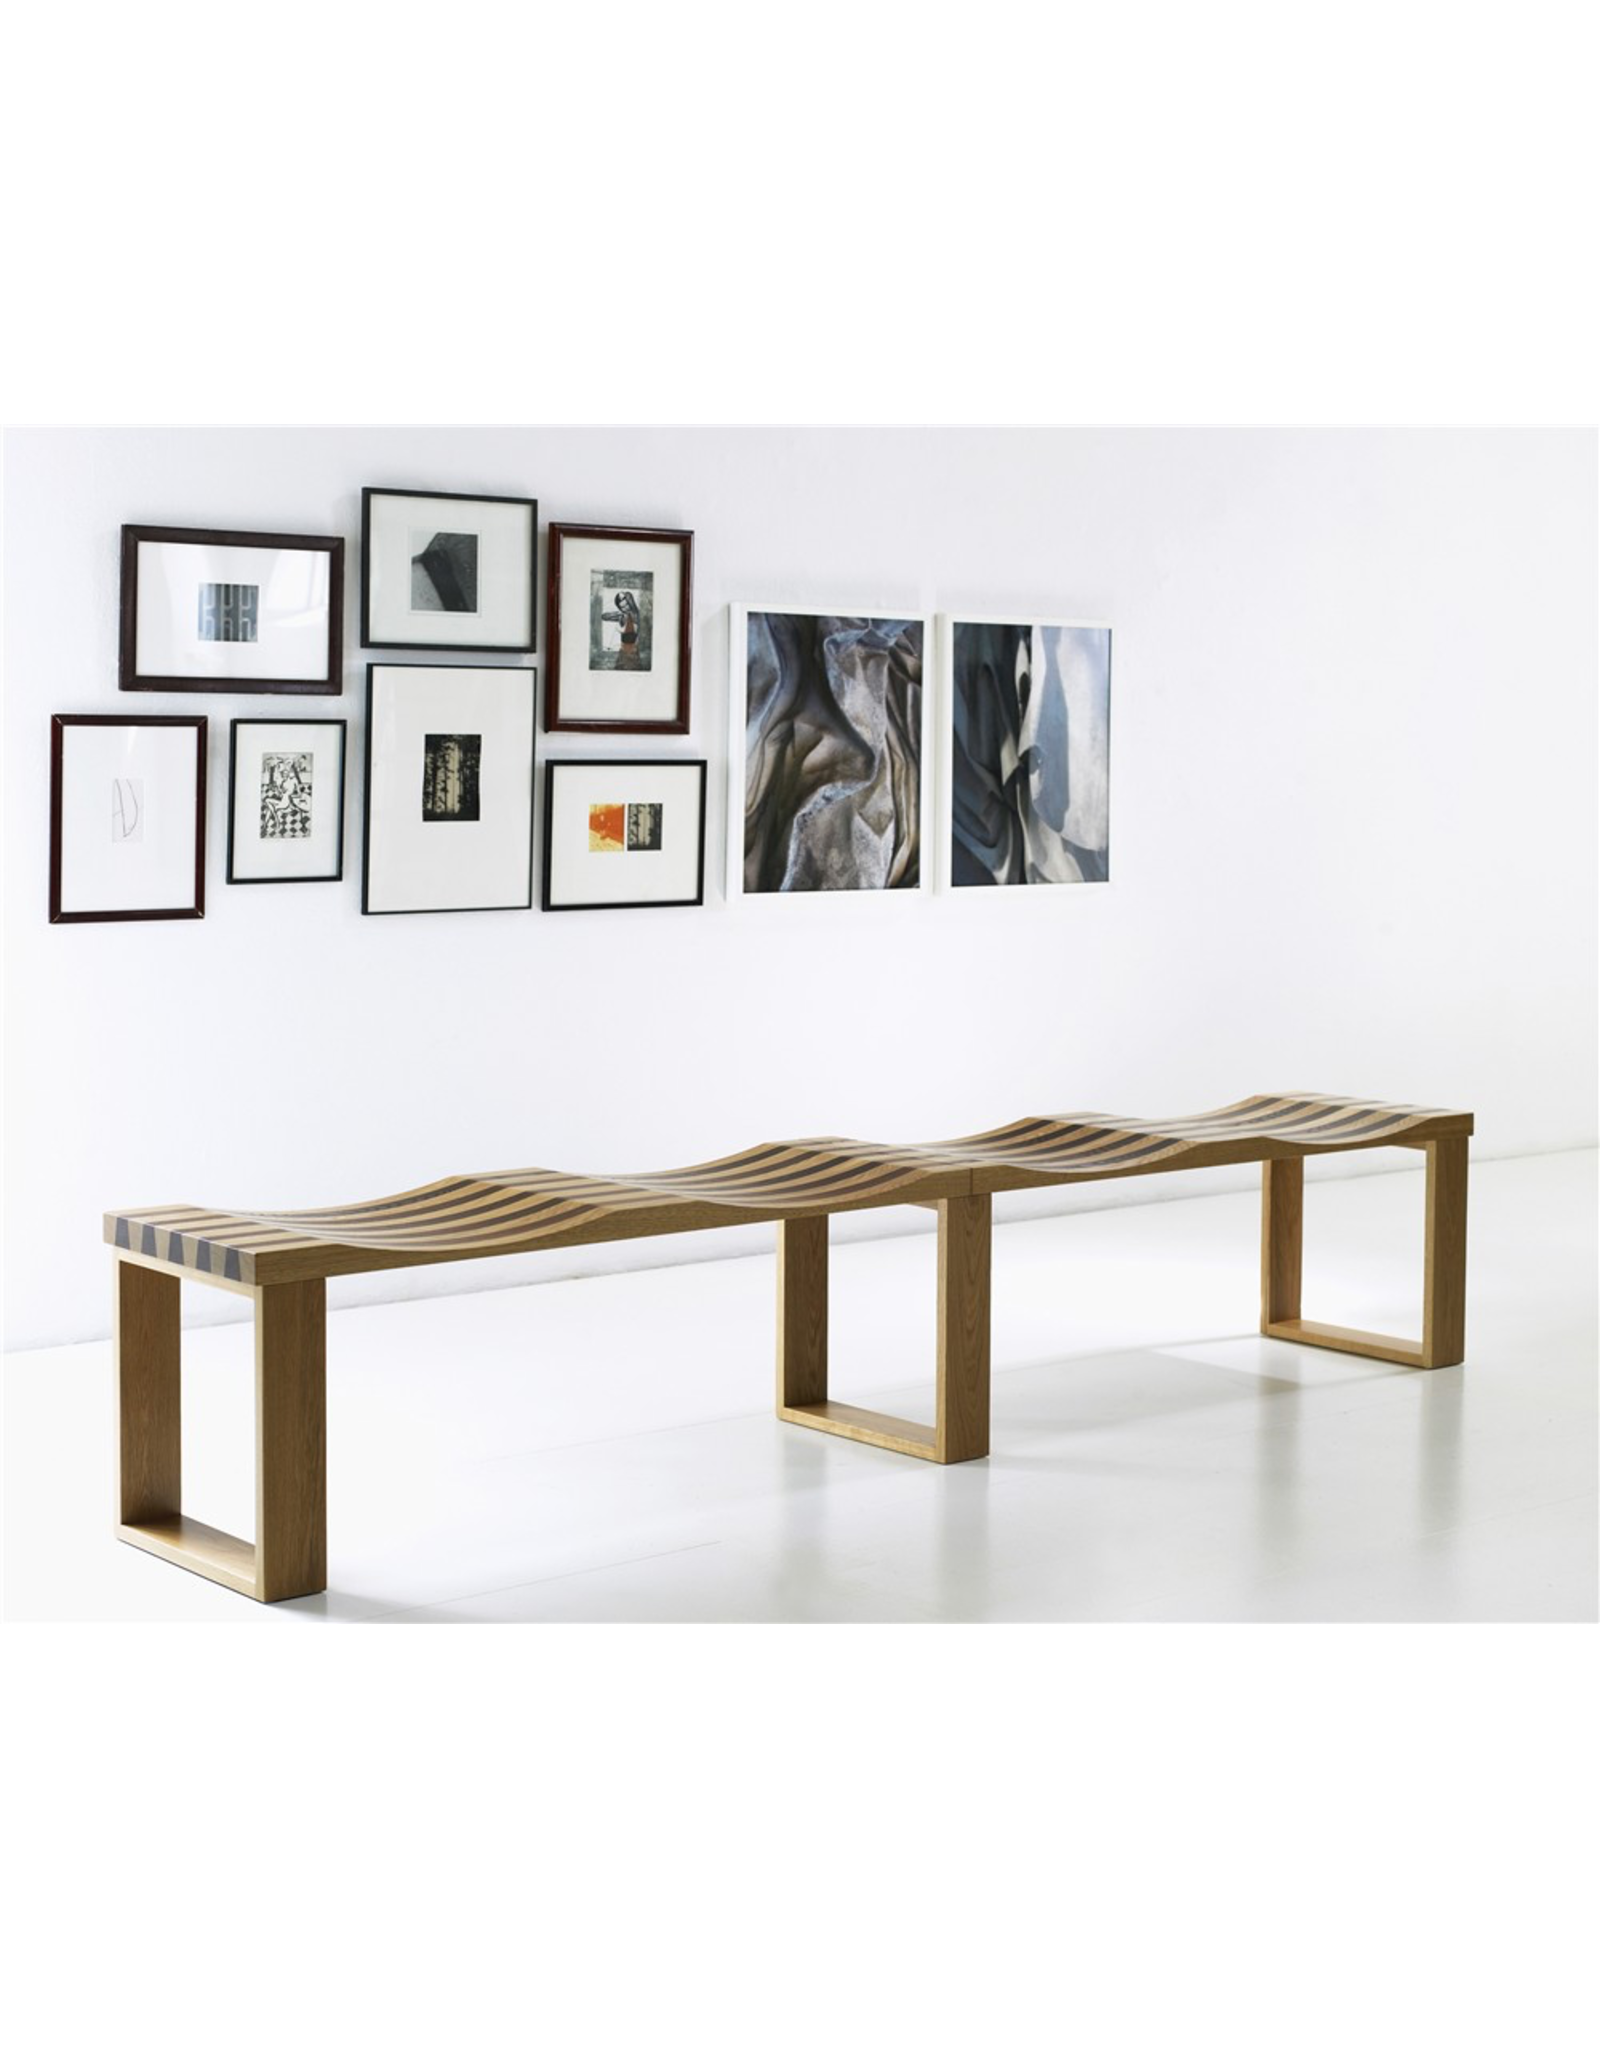 KARL ANDERSSON & SÖNER SIDE BY SIDE 4-SEATER BENCH